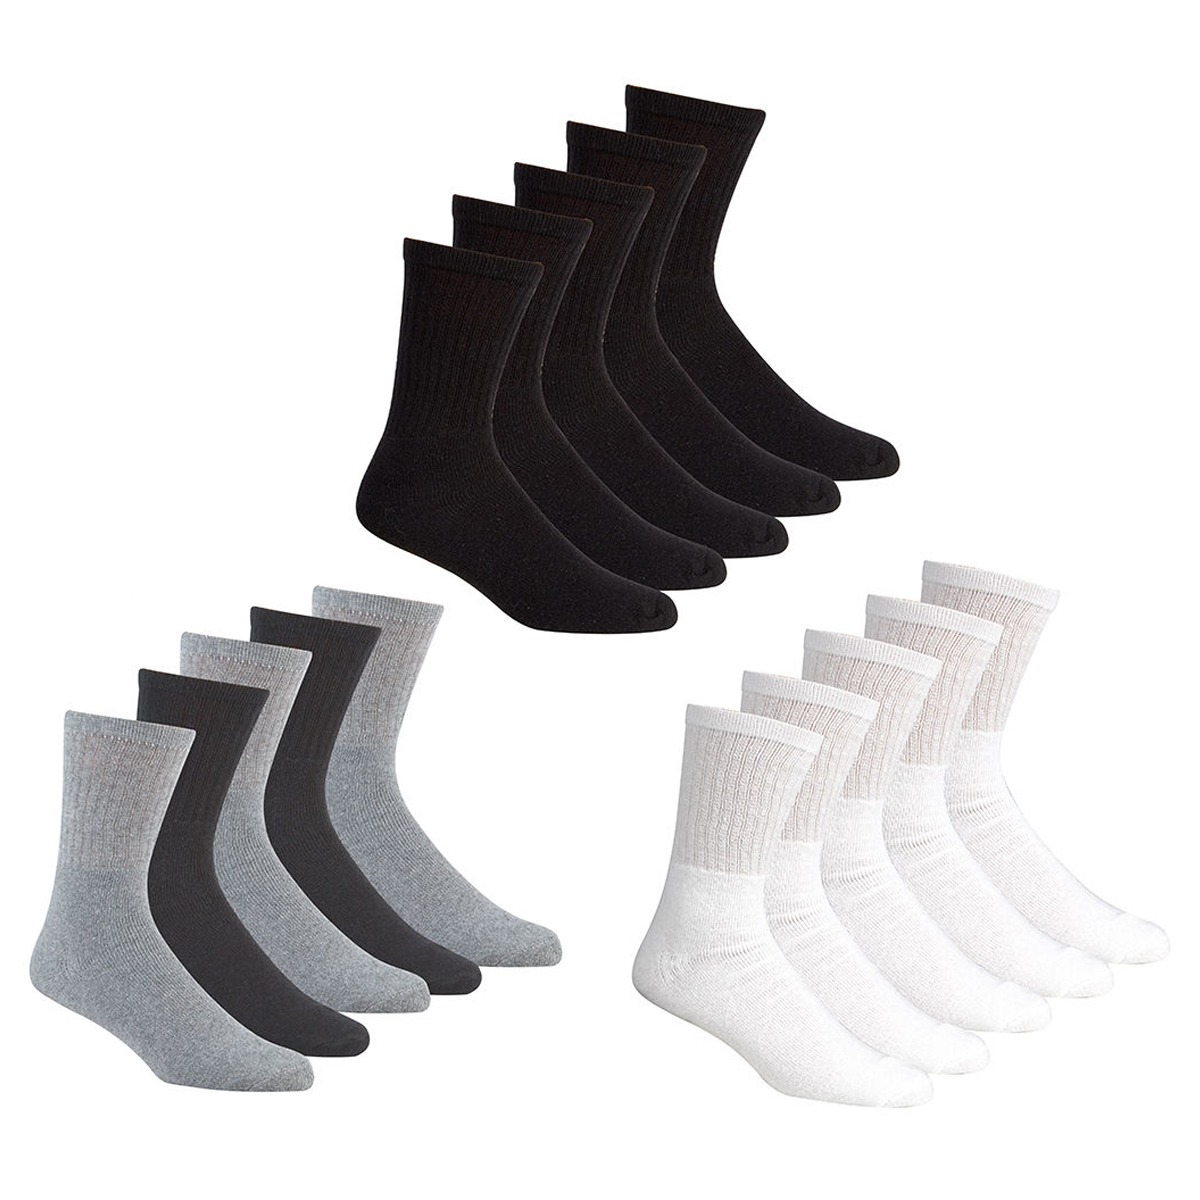 NEW MENS TEENS UMBRO 6 PAIR MULTIPACK ACTIVEWEAR GYM CASUAL SOFT SPORTS SOCKS